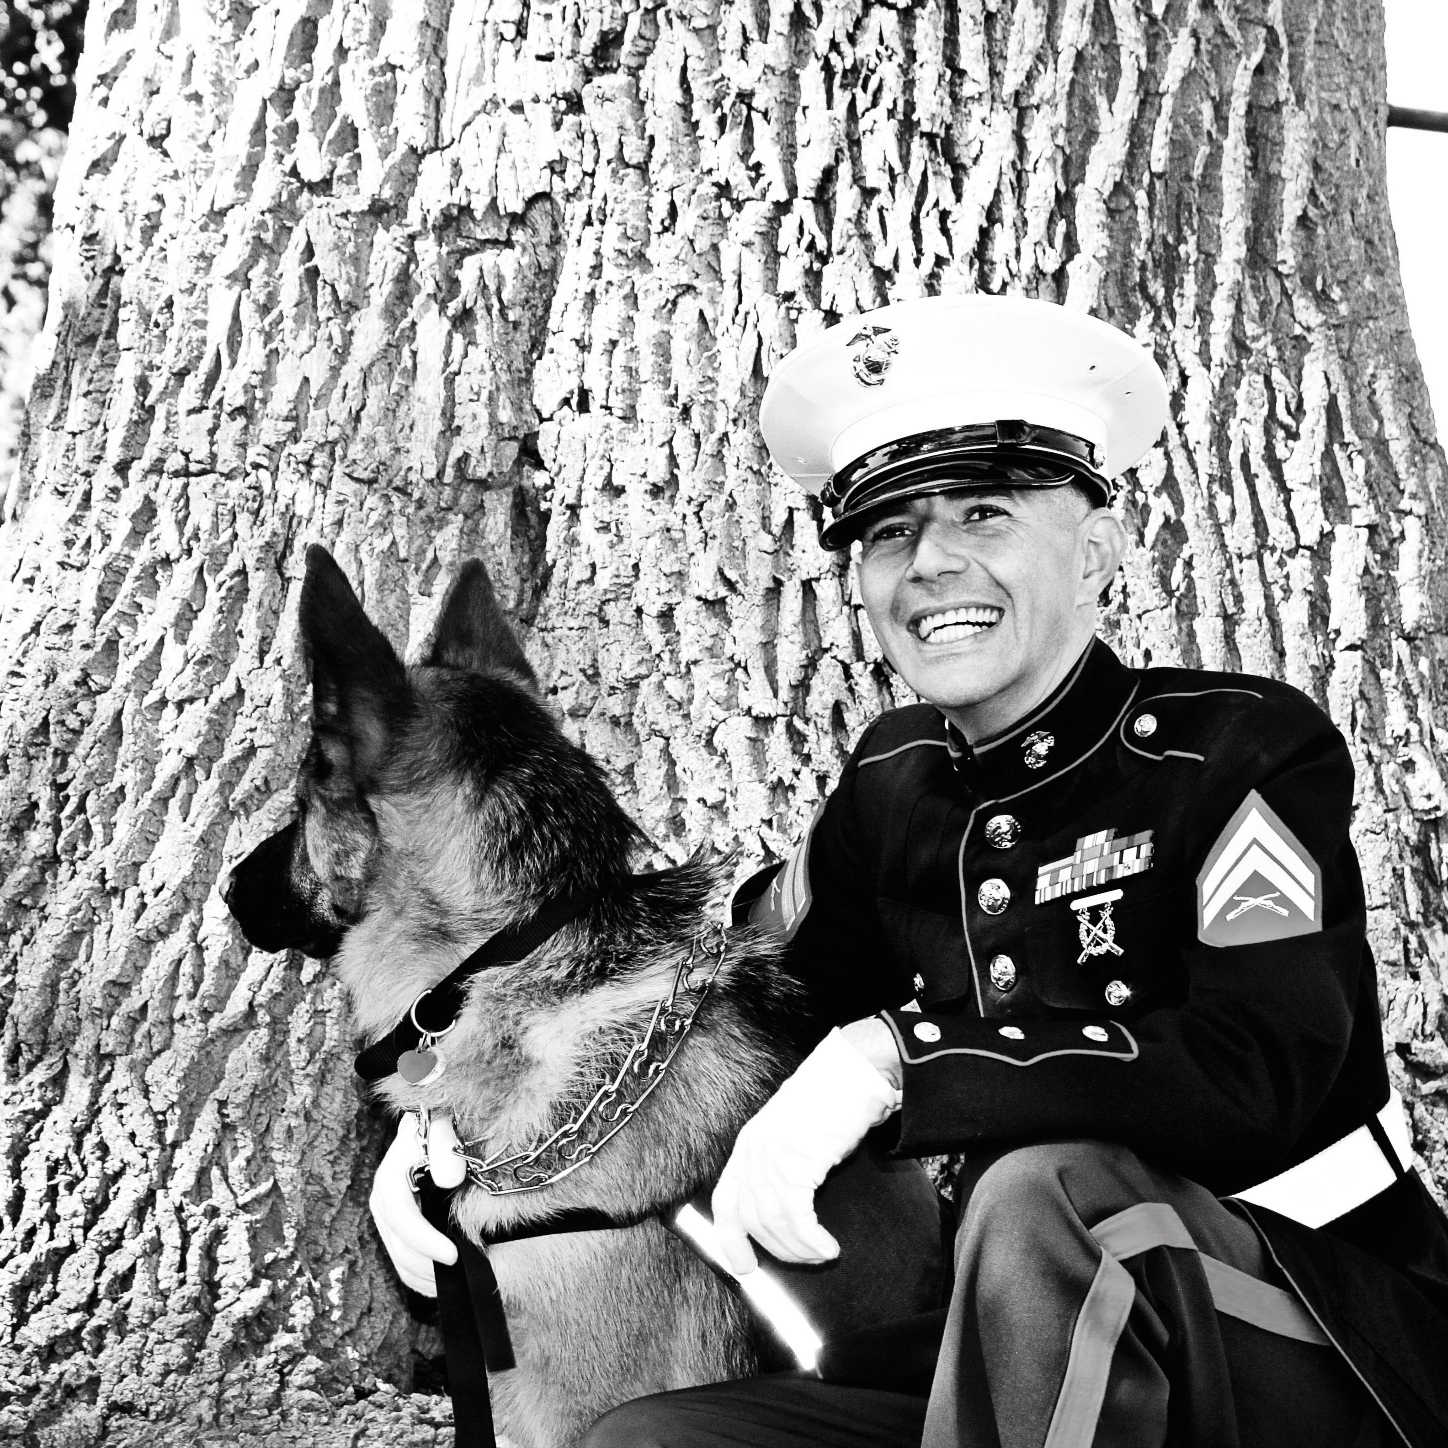 Battle Buddy: Five Service Dogs for Vets with PTSD Image